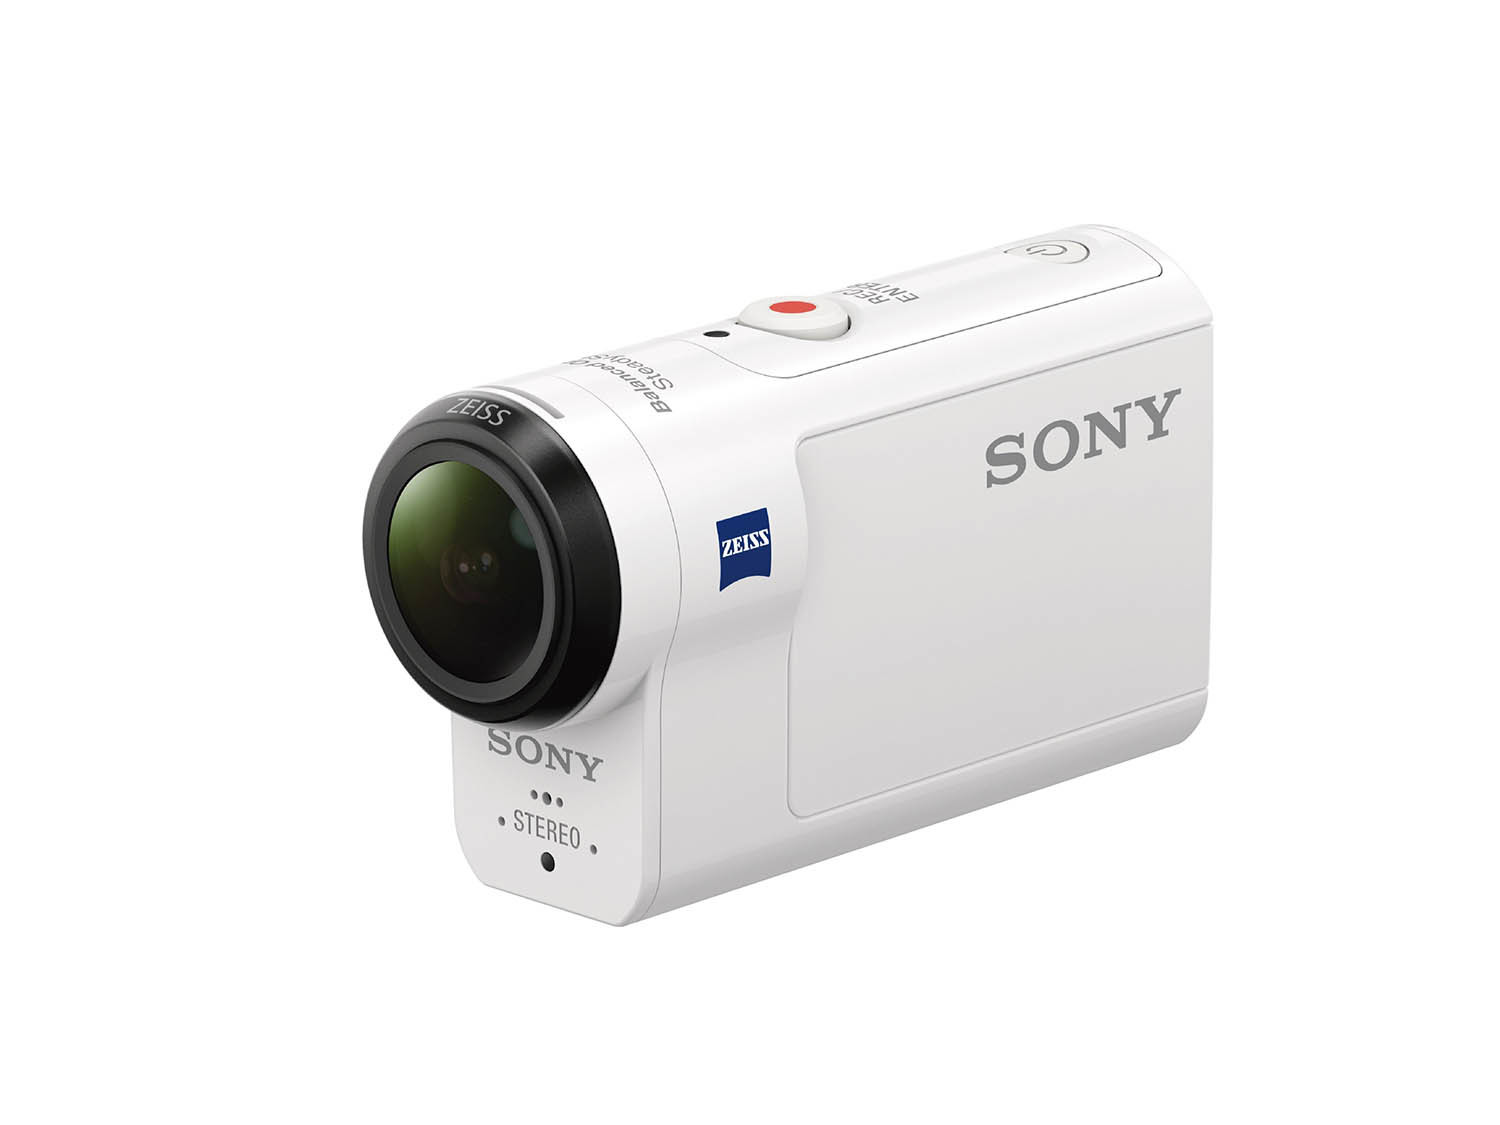 Купить экшн камеру Sony HDR-AS300 в Sony Centre Воронеж